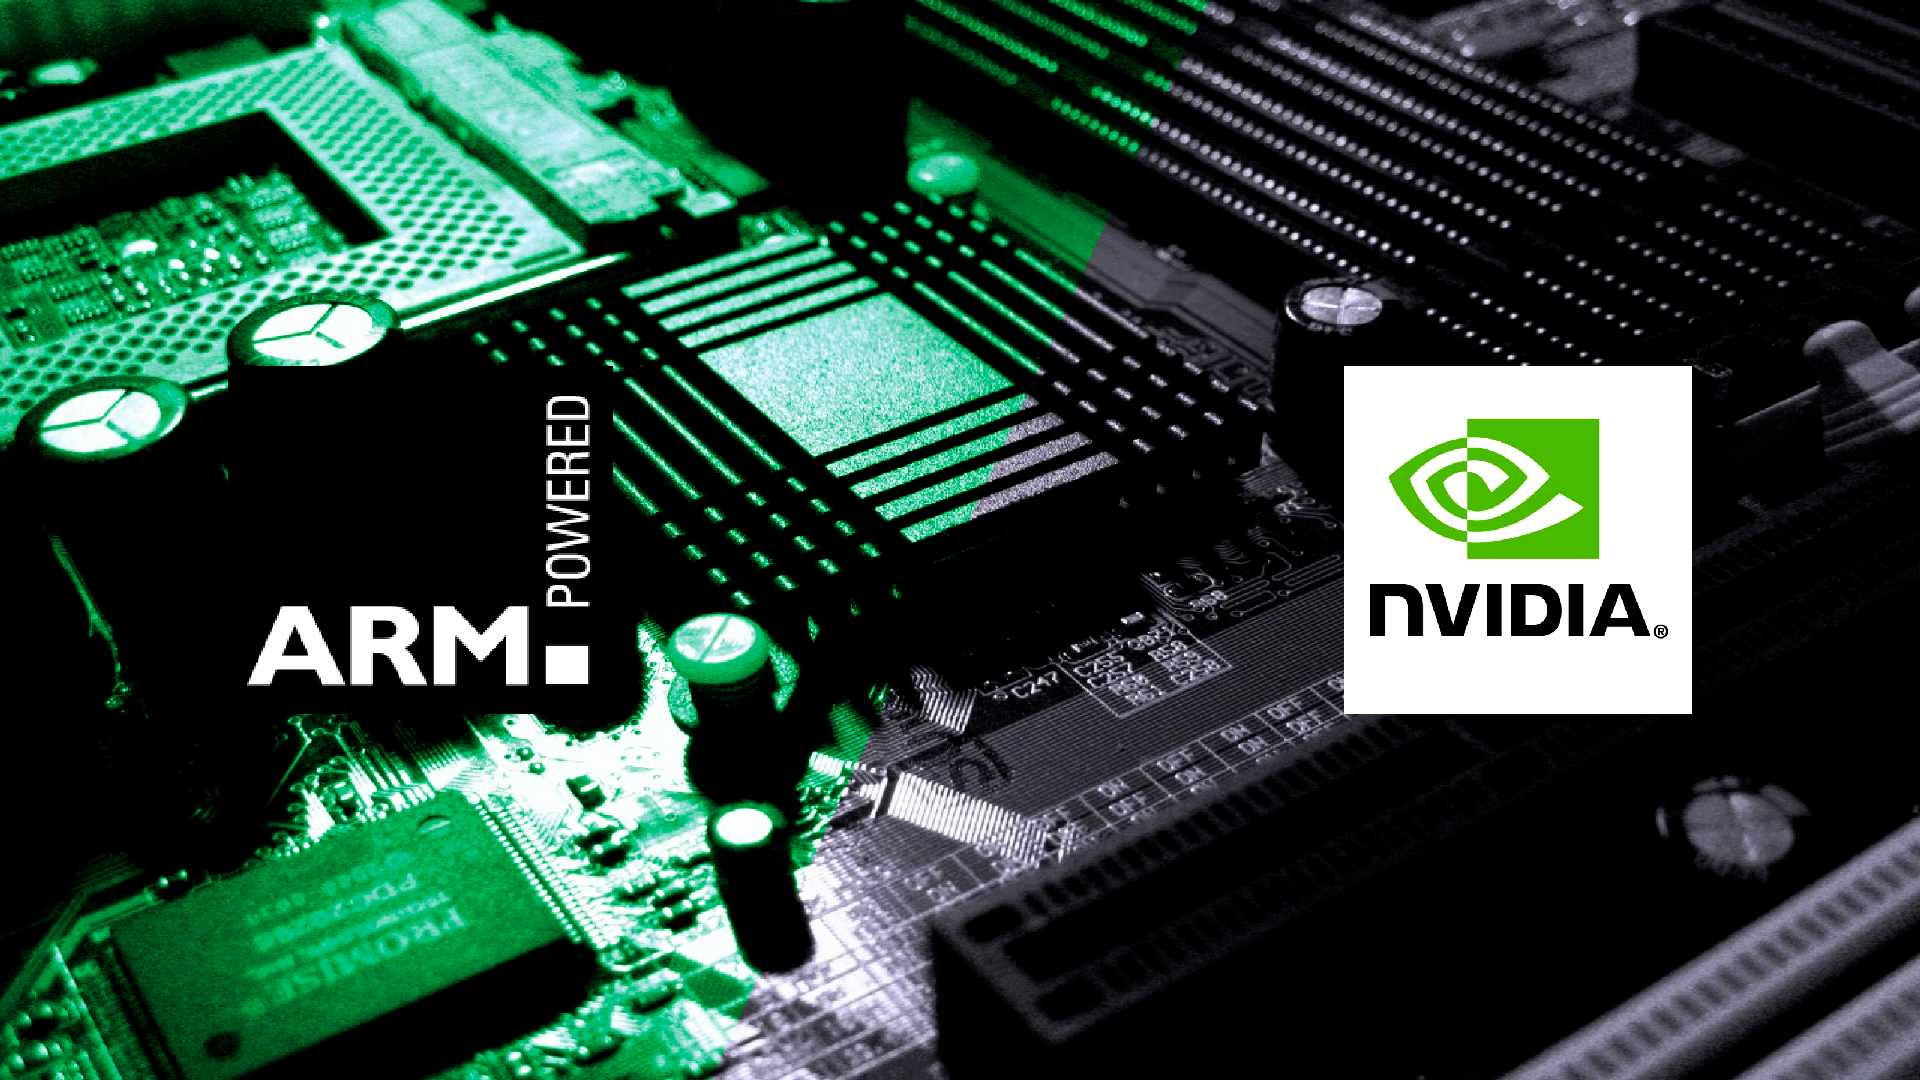 NVIDIA to boost supercomputers with ARM processors